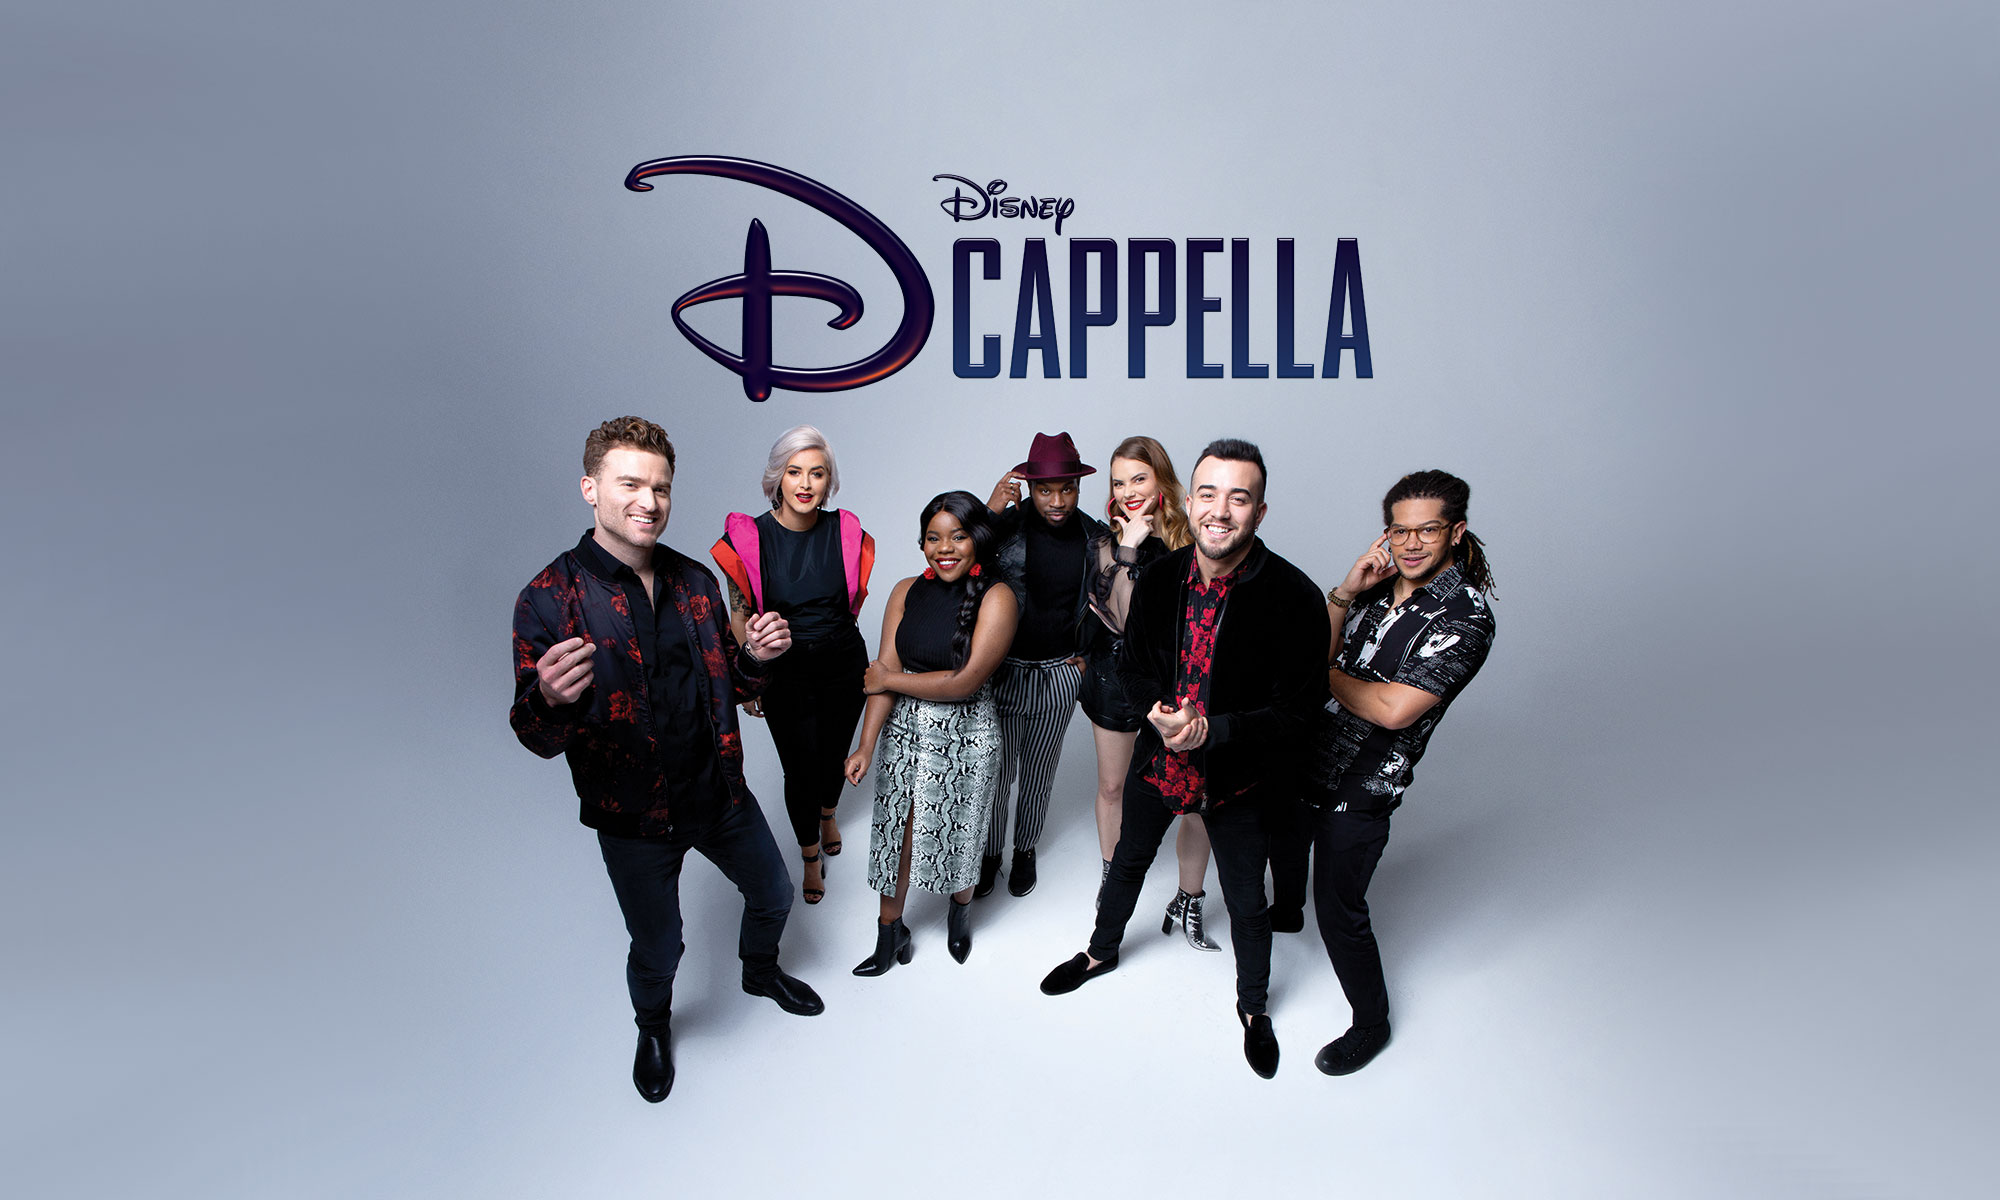 Who is part of the DCappella cast?